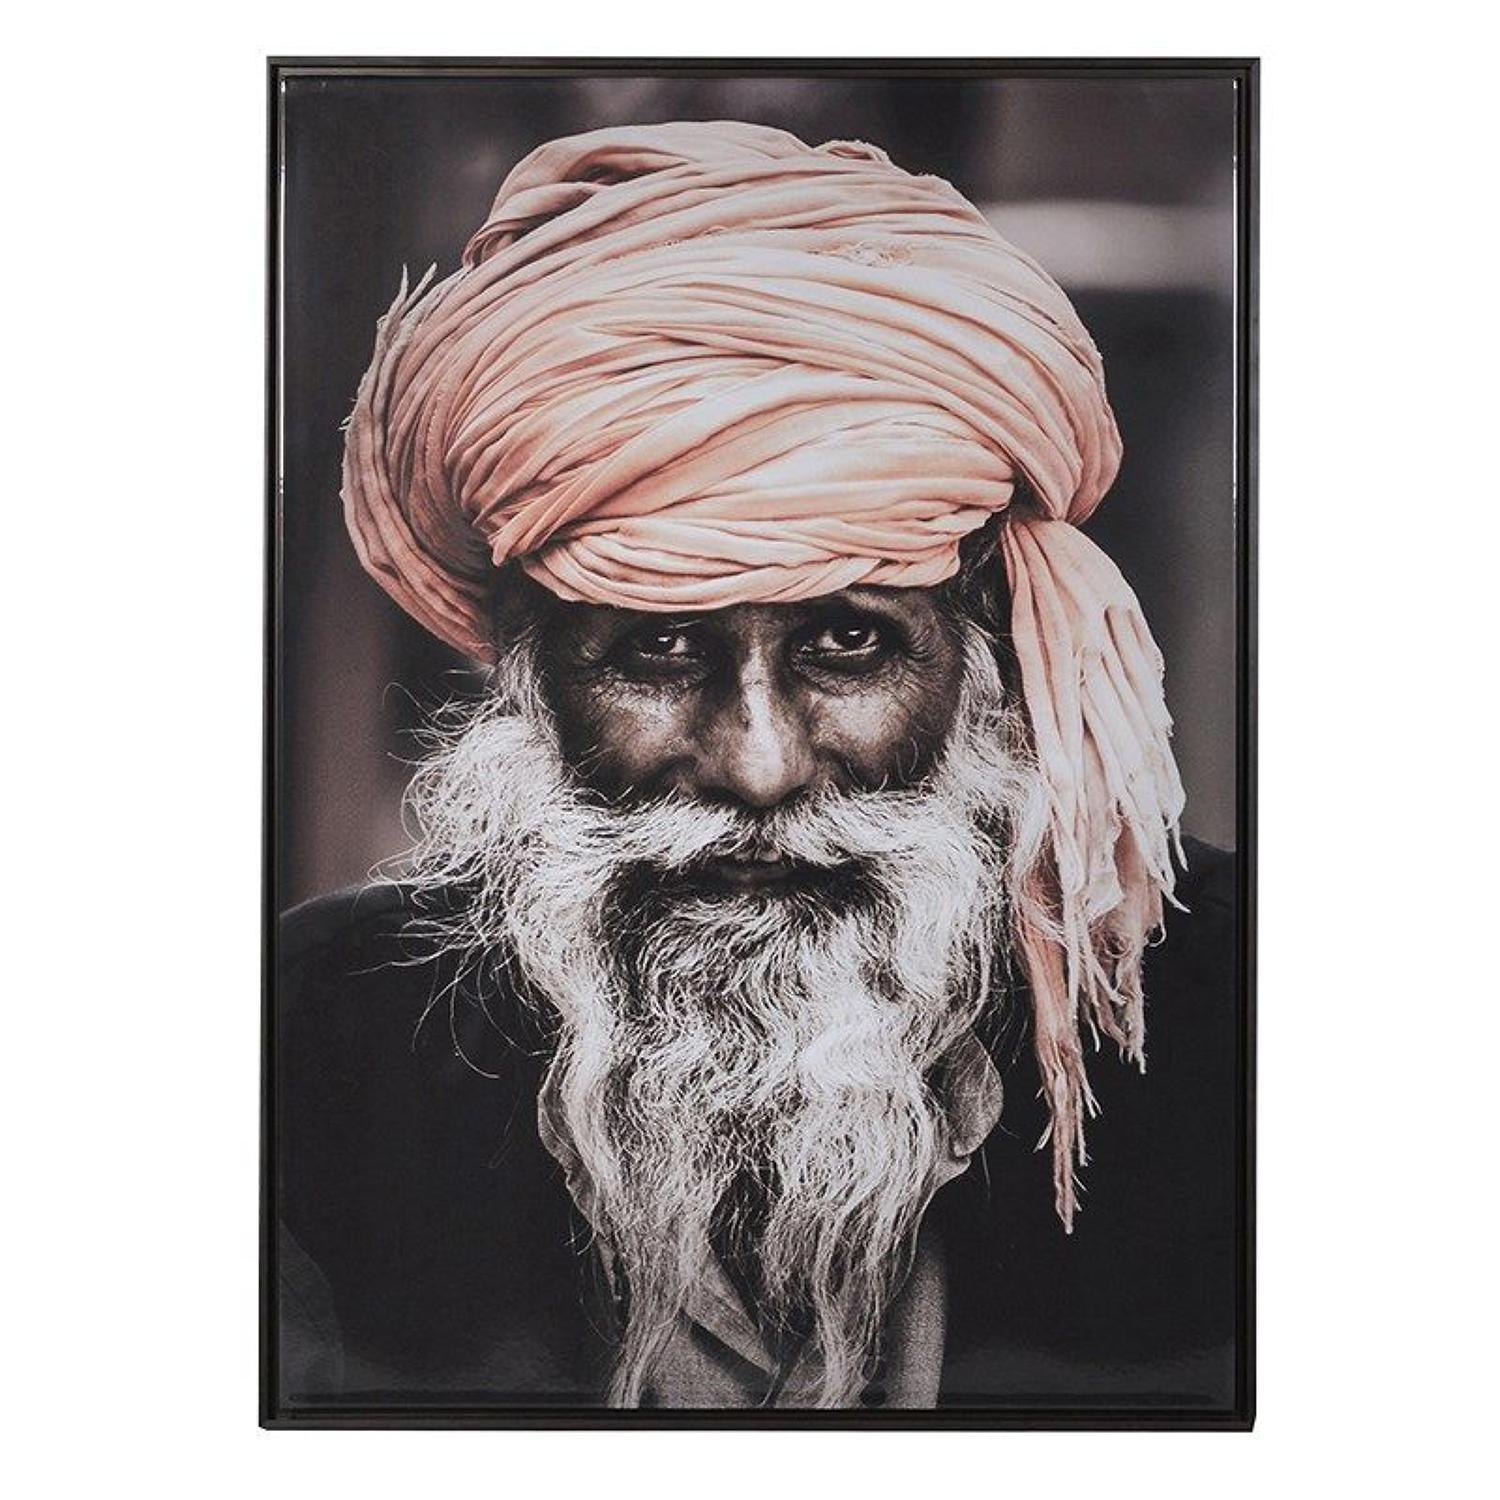 Oversized framed, gloss print of wise Indian man